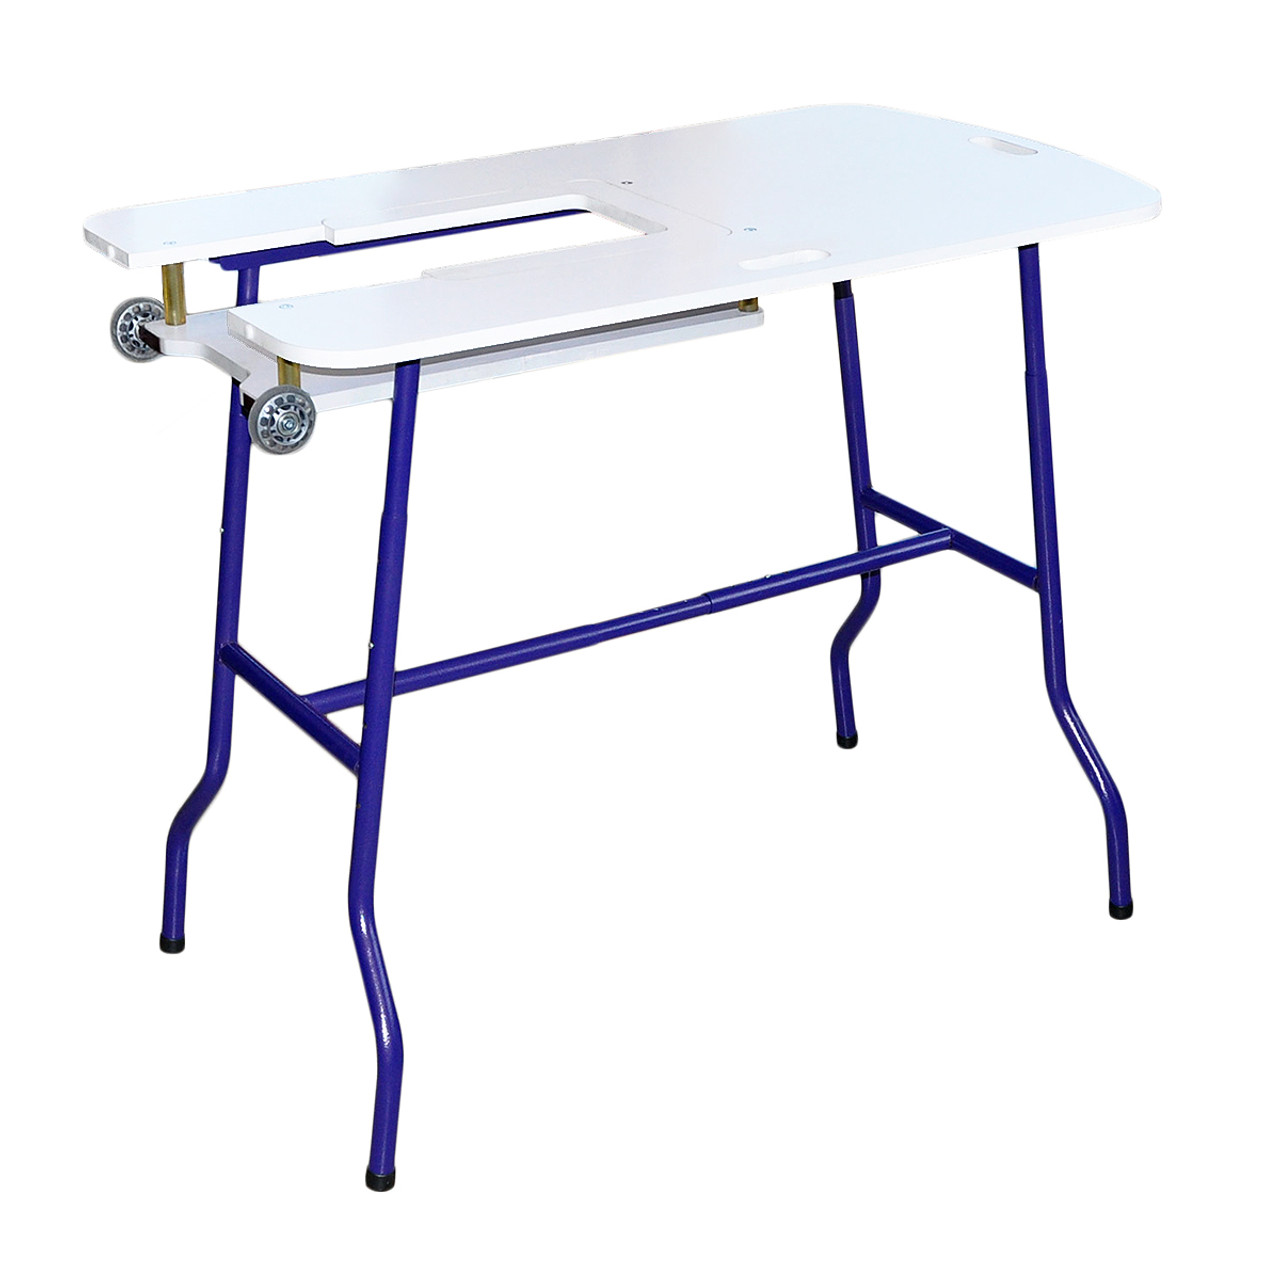 - Sullivans Adjustable Height Foldable Sewing Table Model 39276